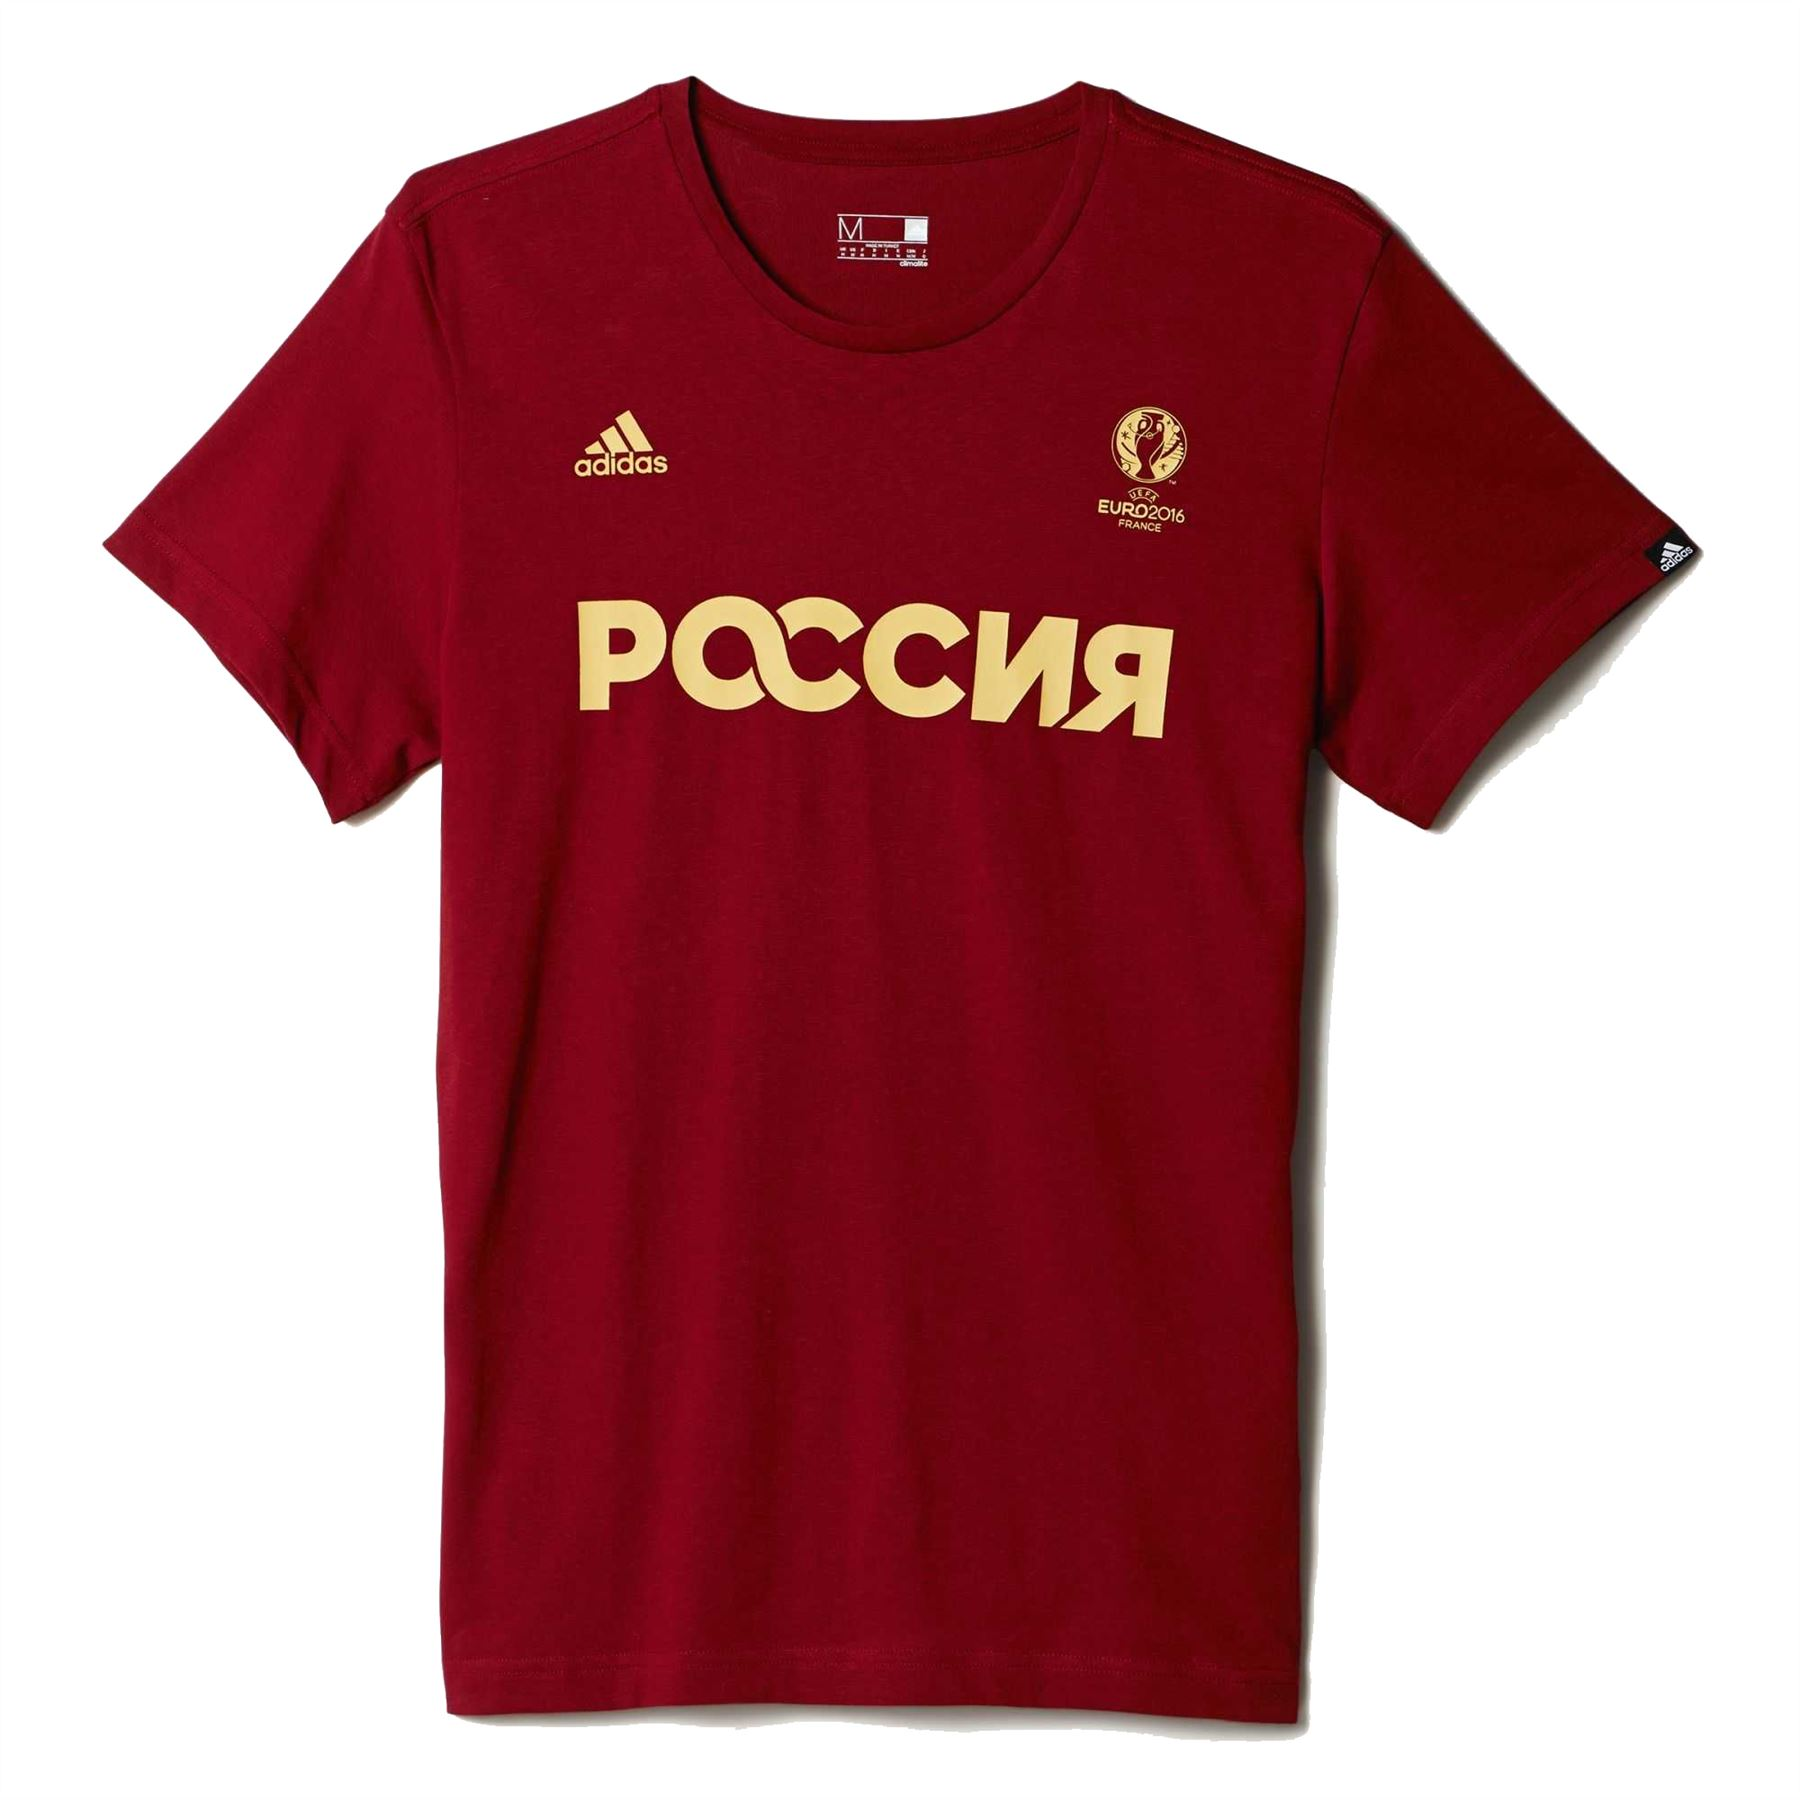 Adidas Russia Climalite T-Shirt Mens Red Football Soccer